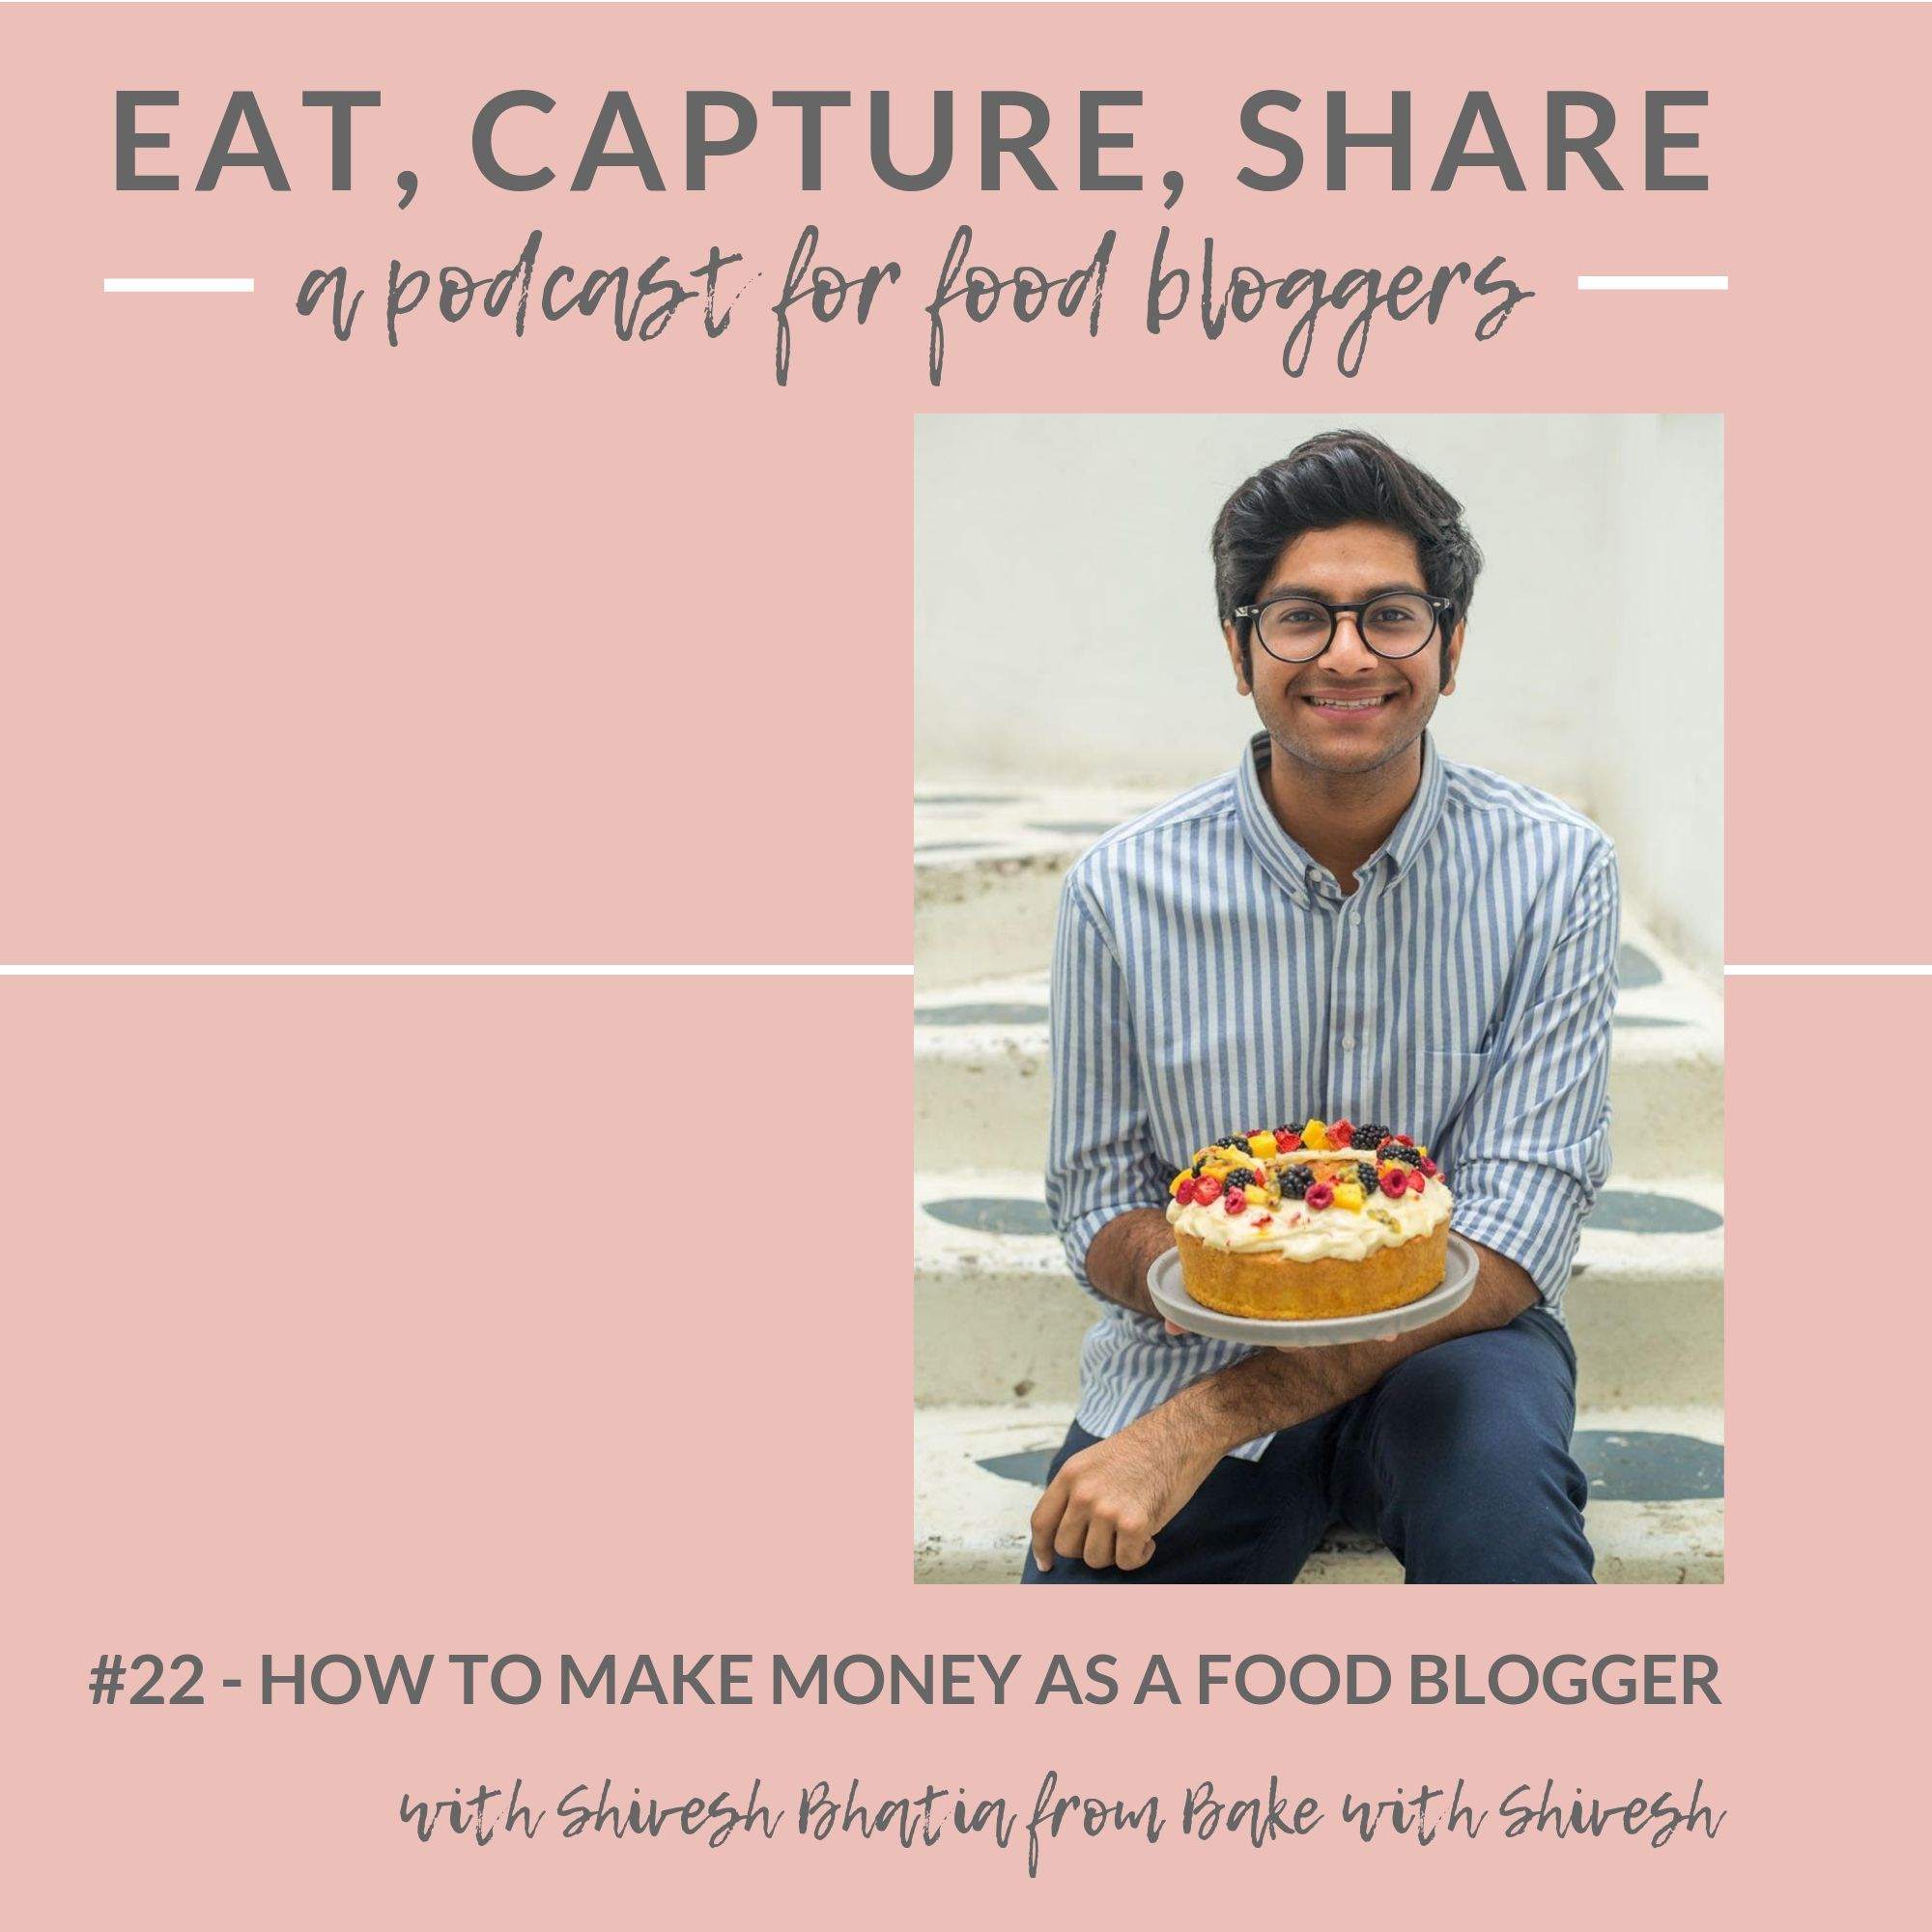 How to make money as a food blogger - Eat, Capture, Share Podcast